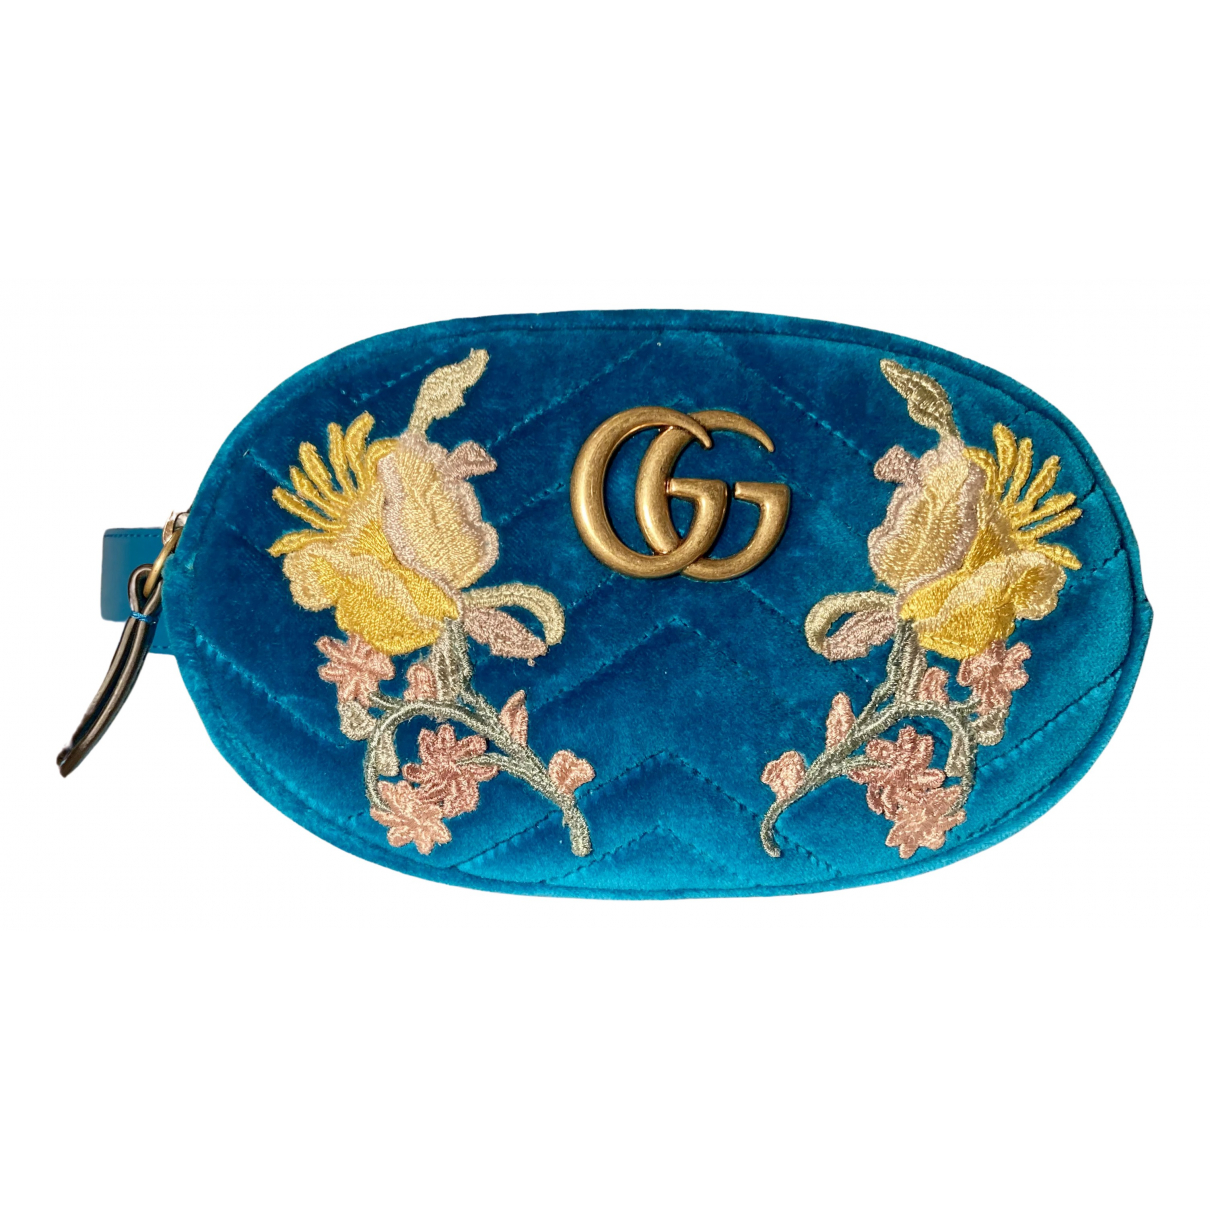 Gucci N Blue Velvet Clutch bag for Women N